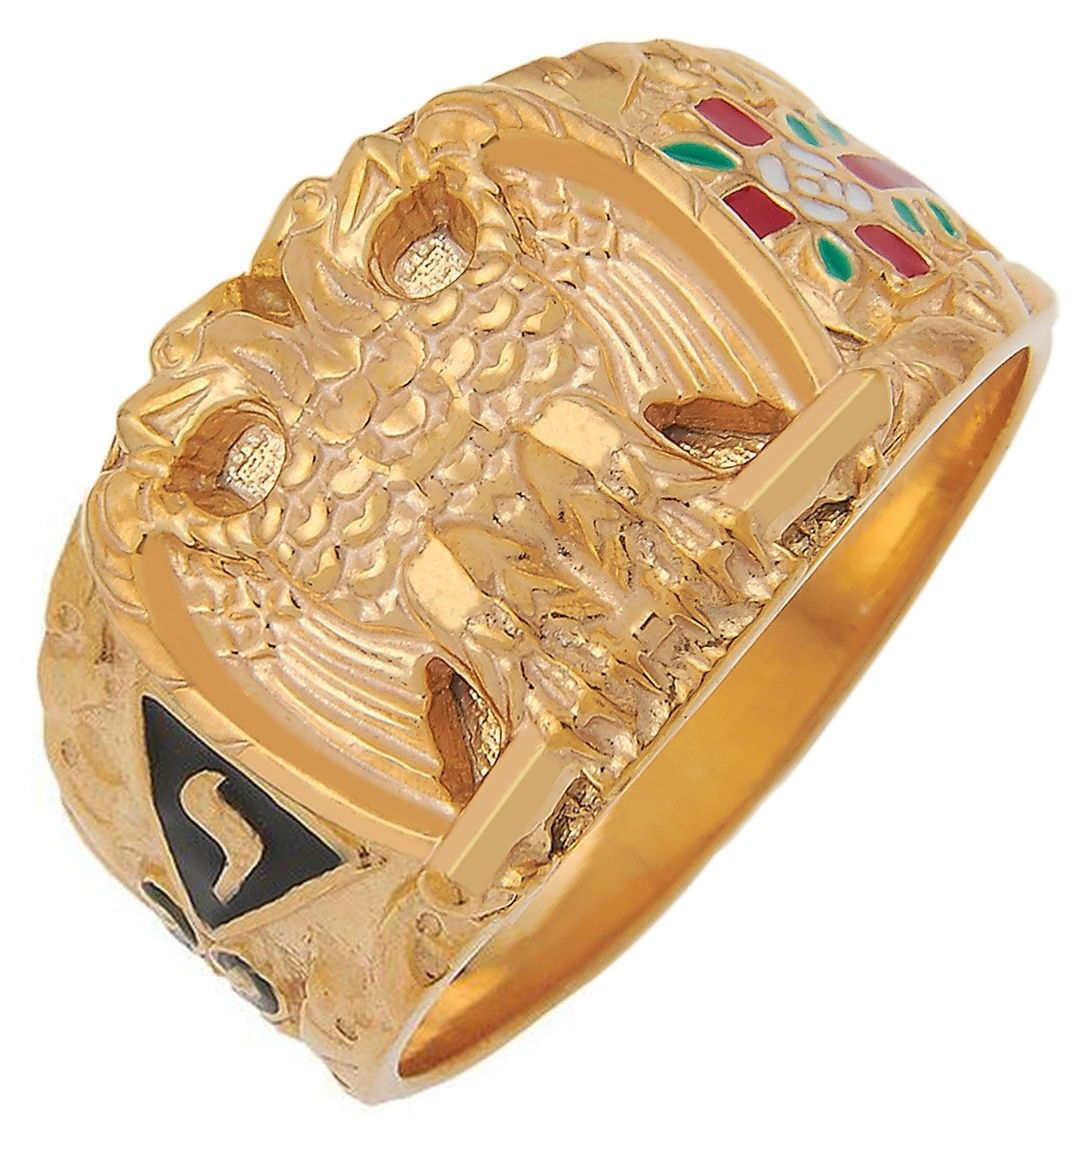 32nd Degree Mason ring with the double-headed eagle symbol